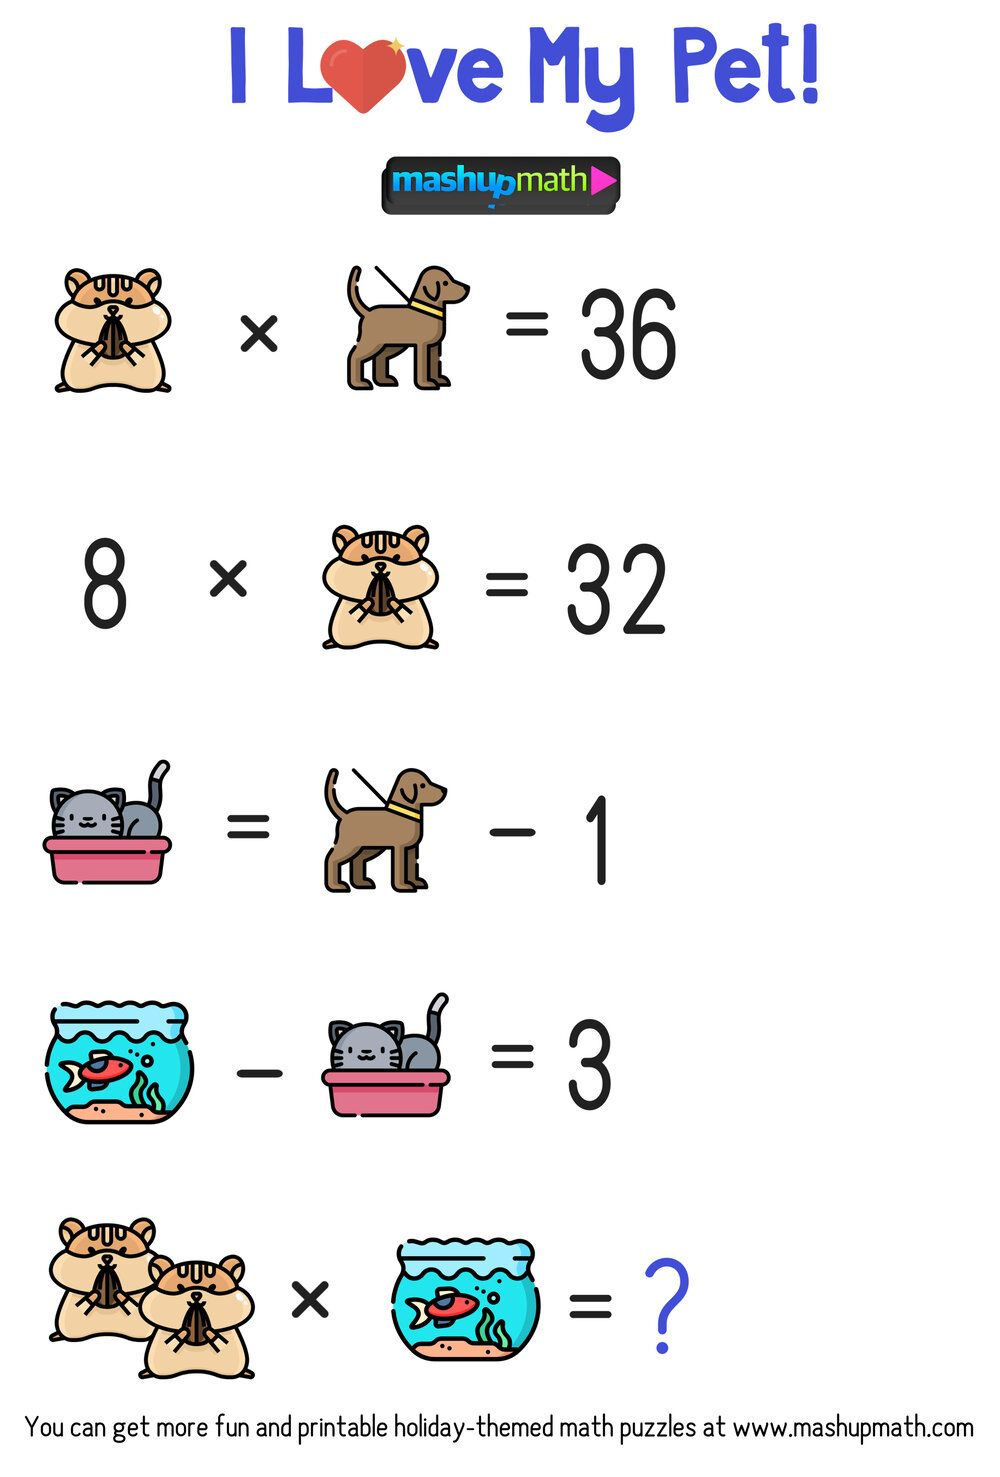 Celebrate National Pet Day In Your Classroom With These Free Math Puzzles Mashup Math Maths Puzzles Free Math Math [ 1477 x 1000 Pixel ]